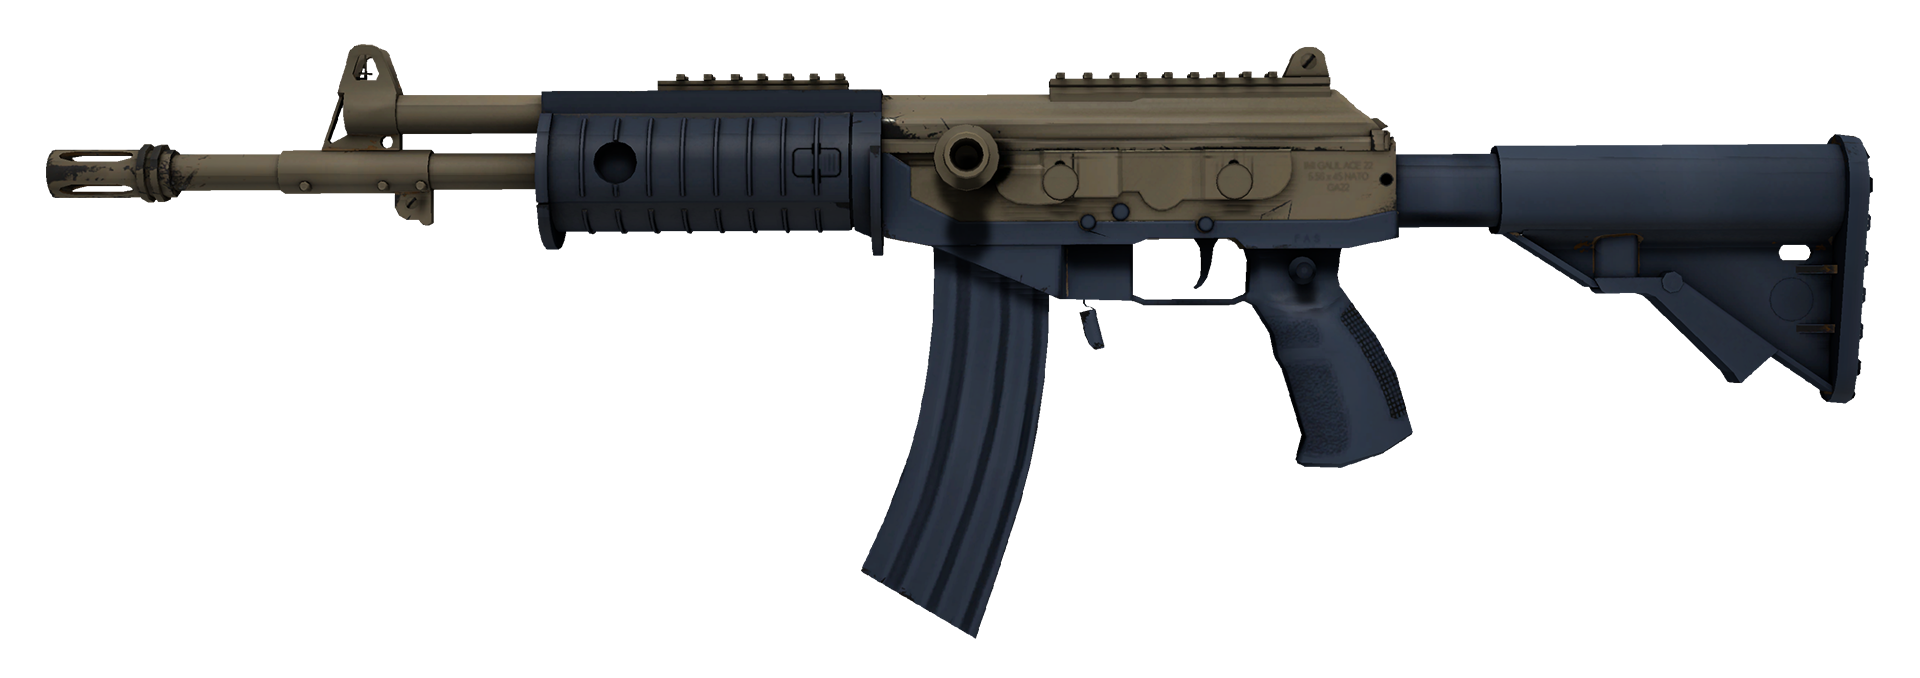 Galil AR Tornado Large Rendering